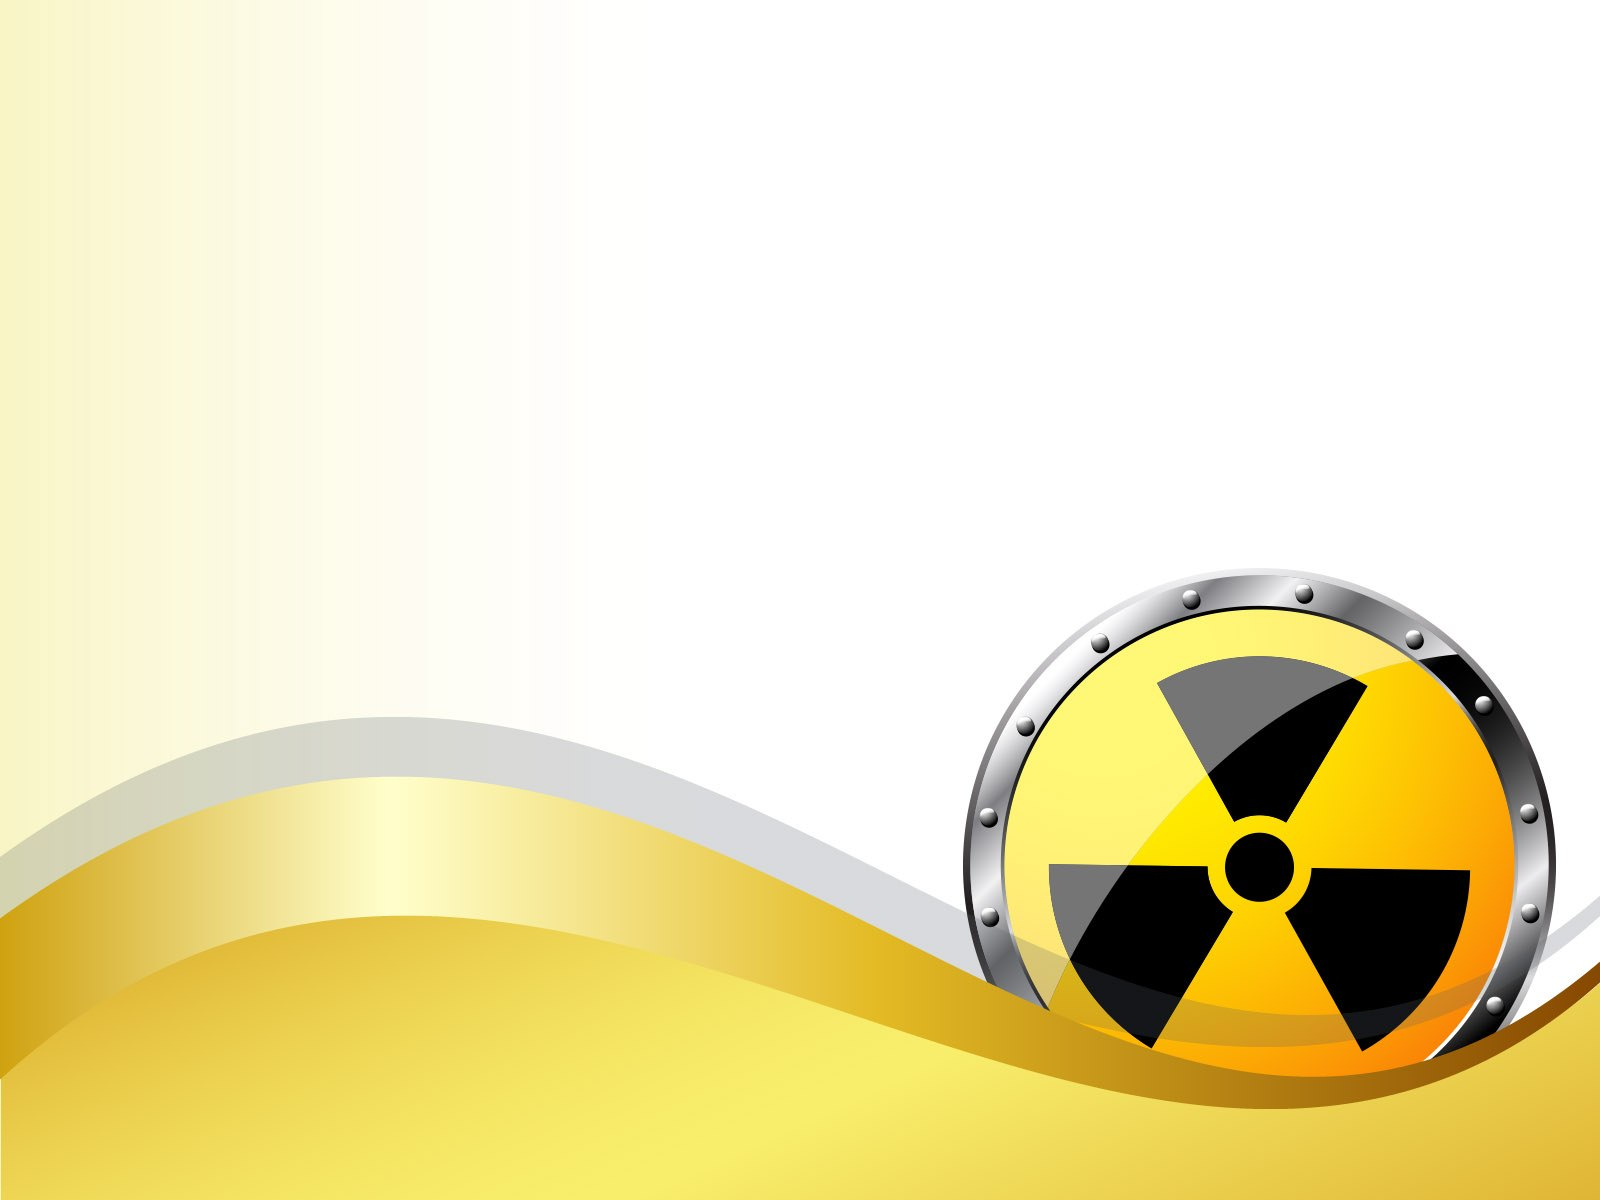 Radiation Radioactivity Powerpoint Templates  Business  Finance Within Nuclear Powerpoint Template